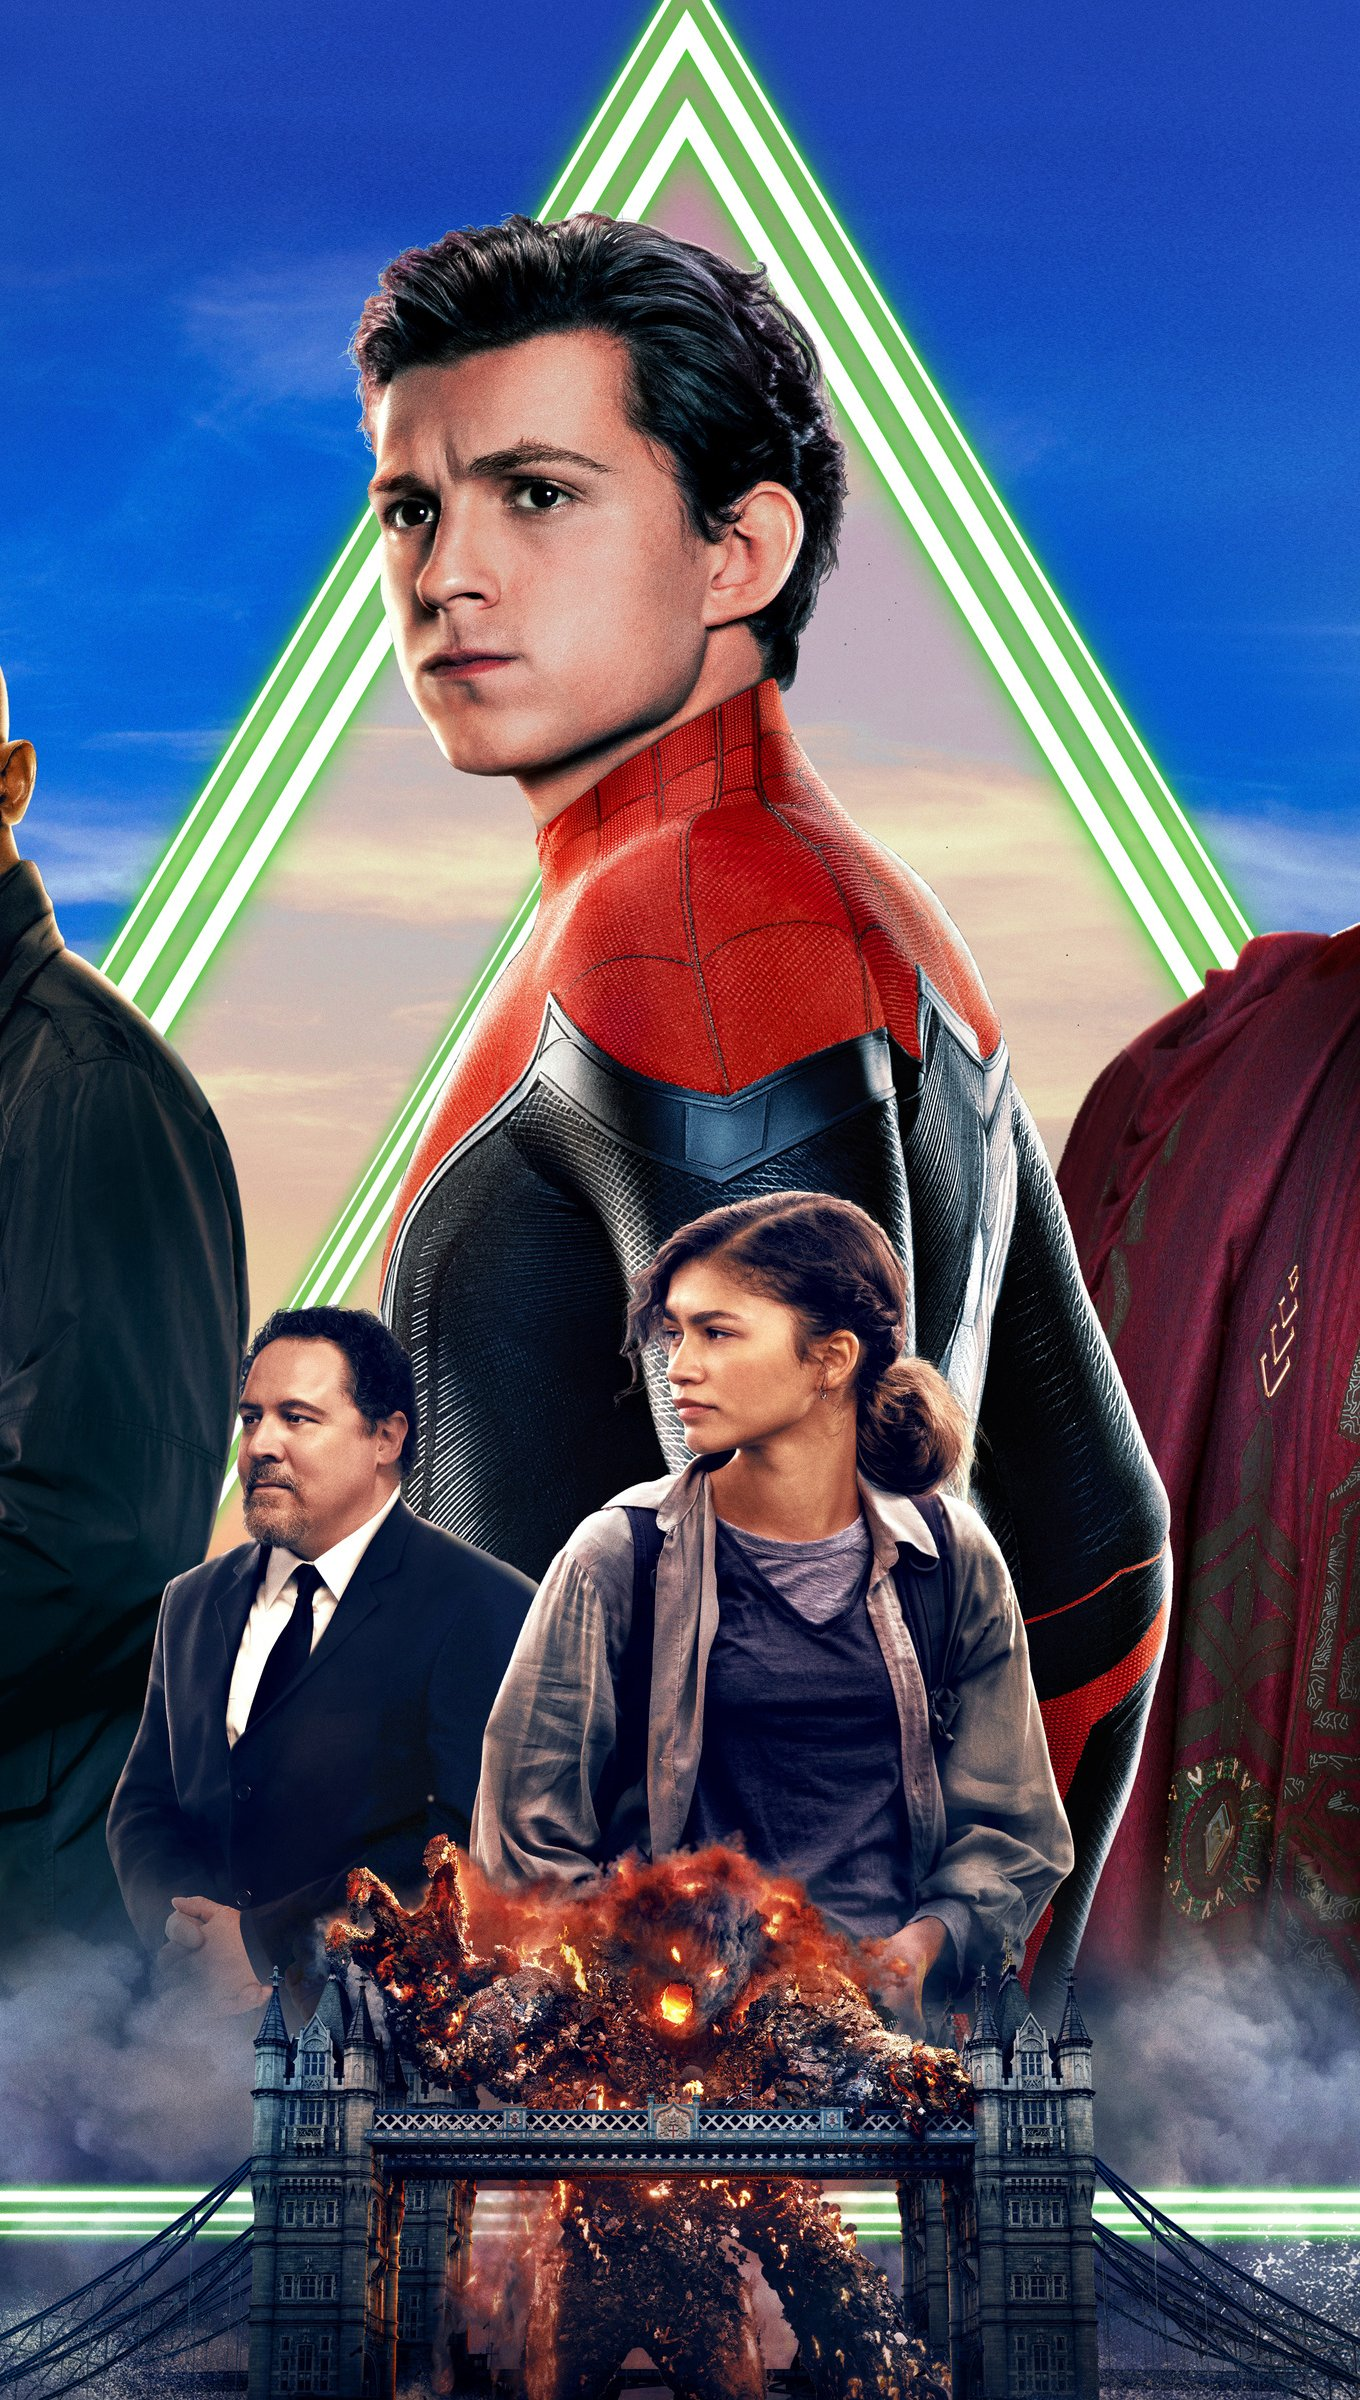 Wallpaper Poster with Characters from Spider Man: Far from home Vertical